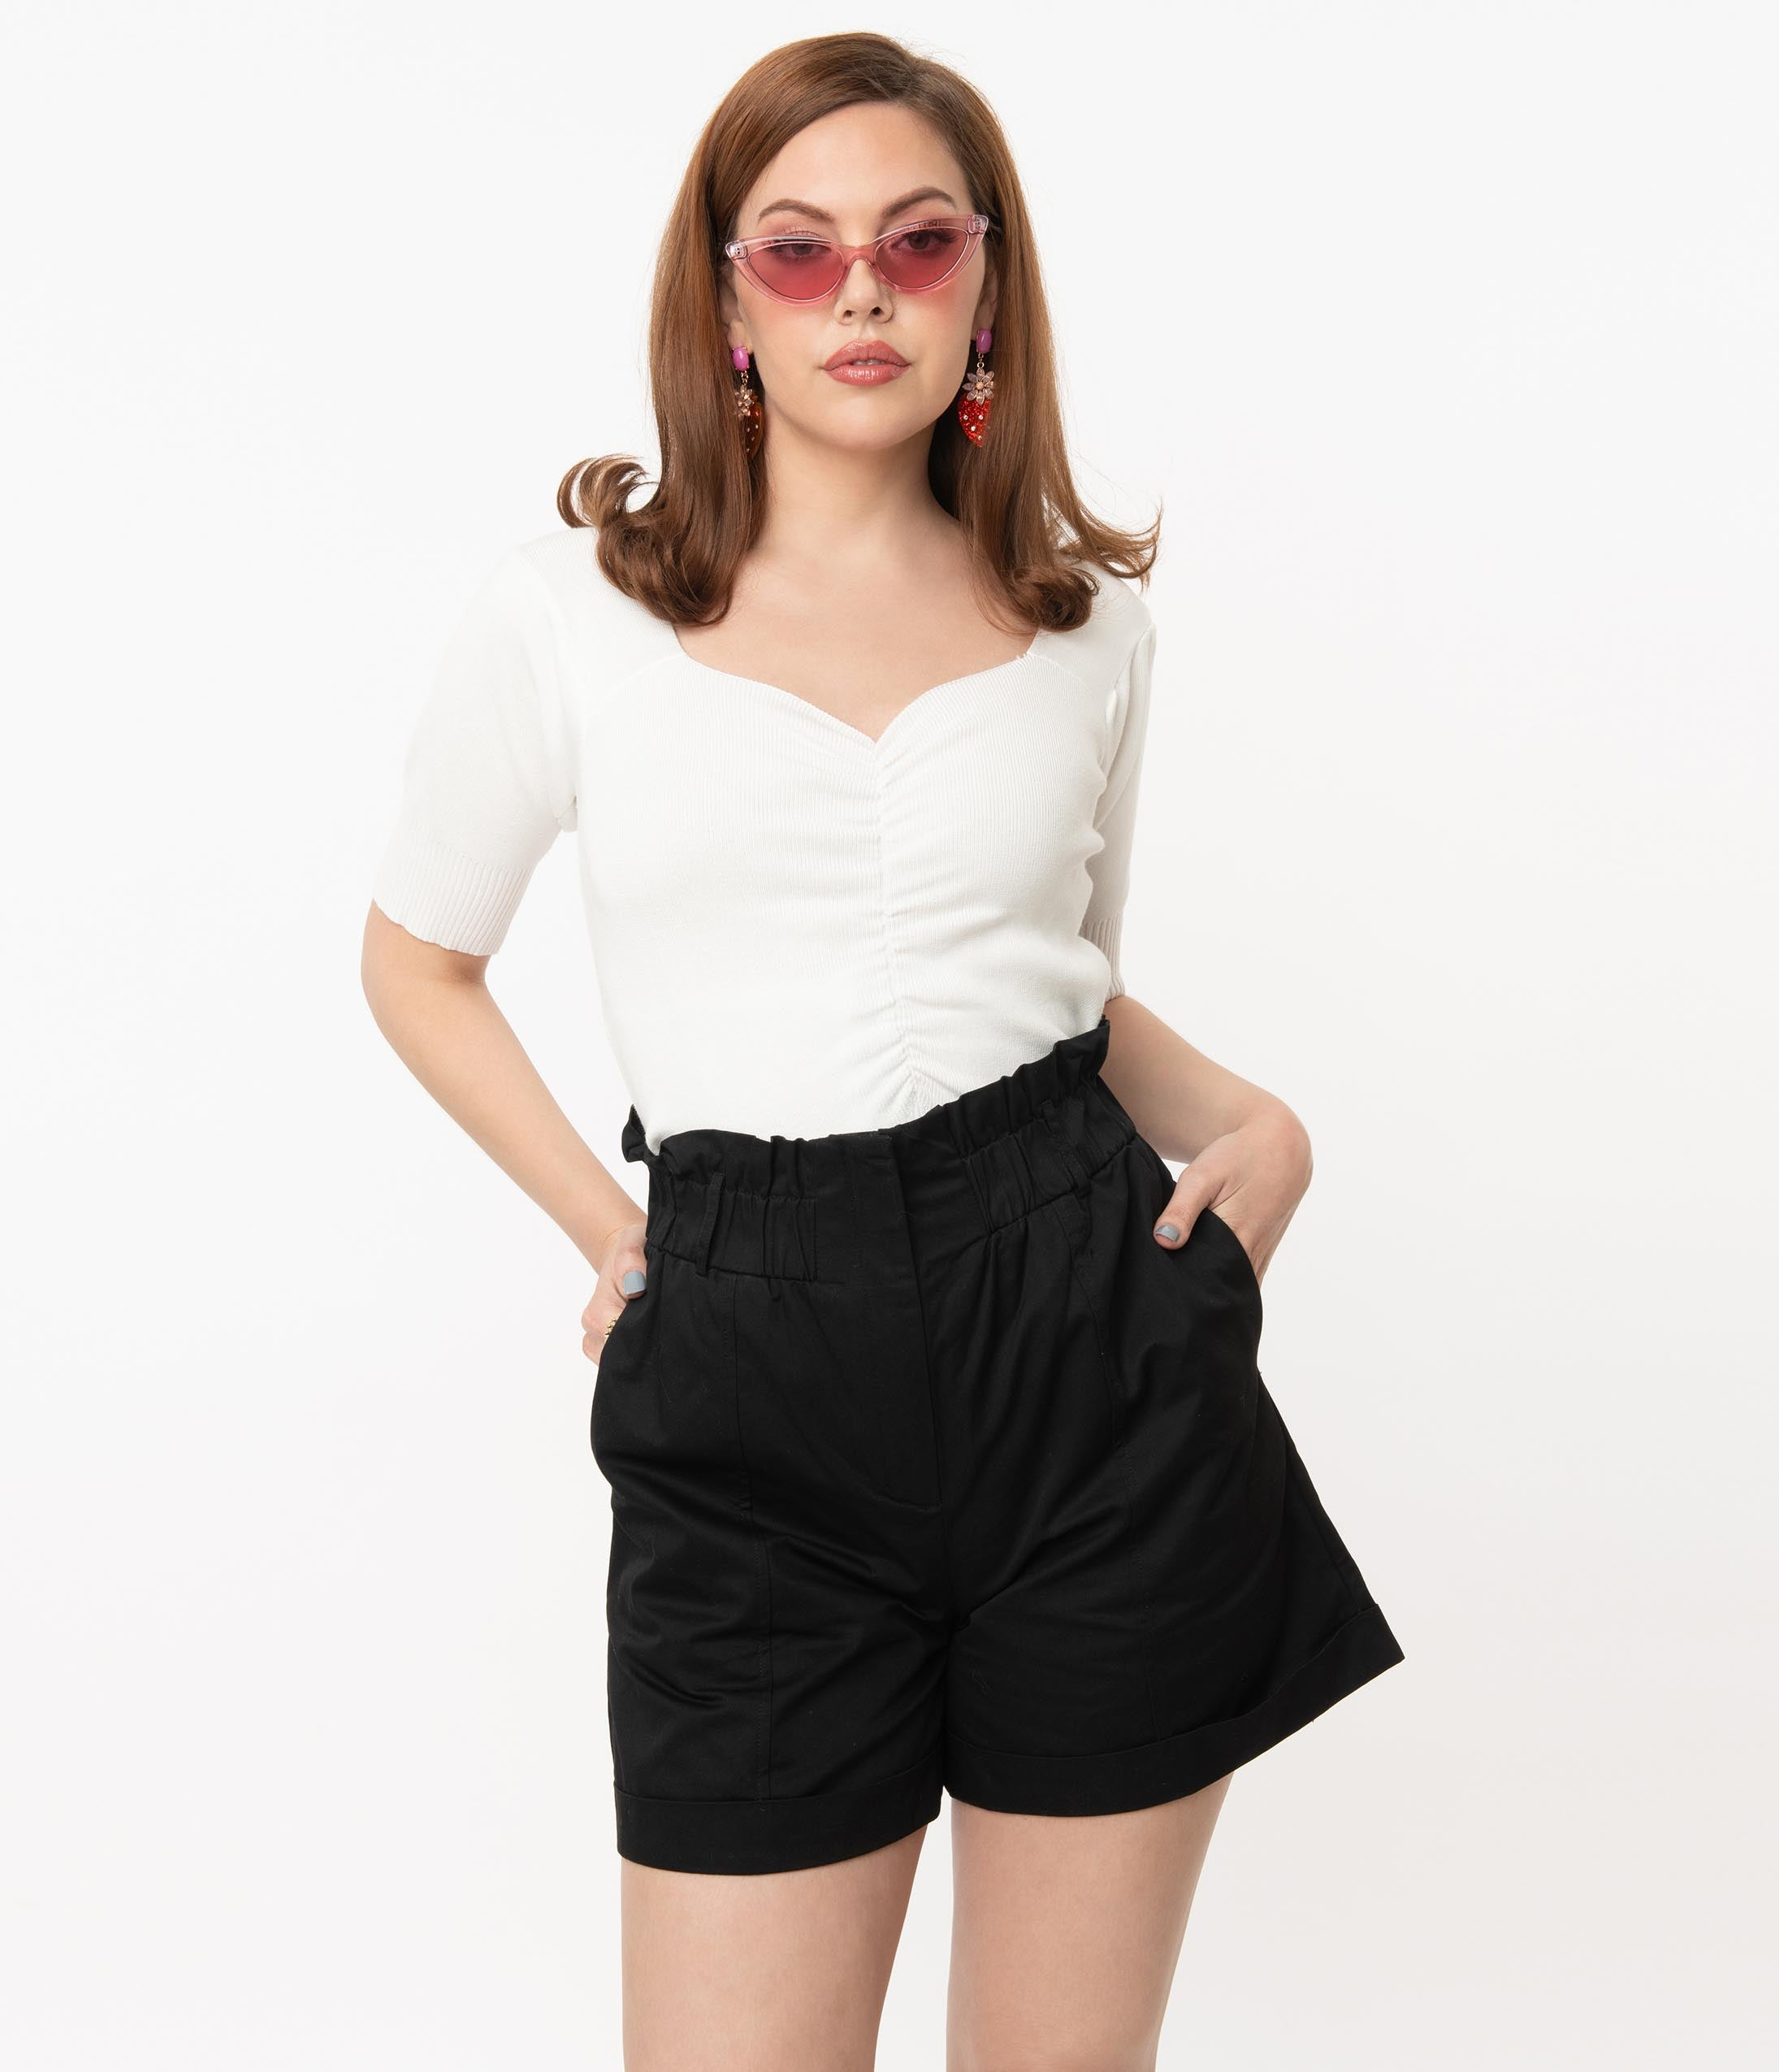 1980s Clothing, Fashion | 80s Style Clothes Vintage Style Black High Waist Shorts $63.00 AT vintagedancer.com